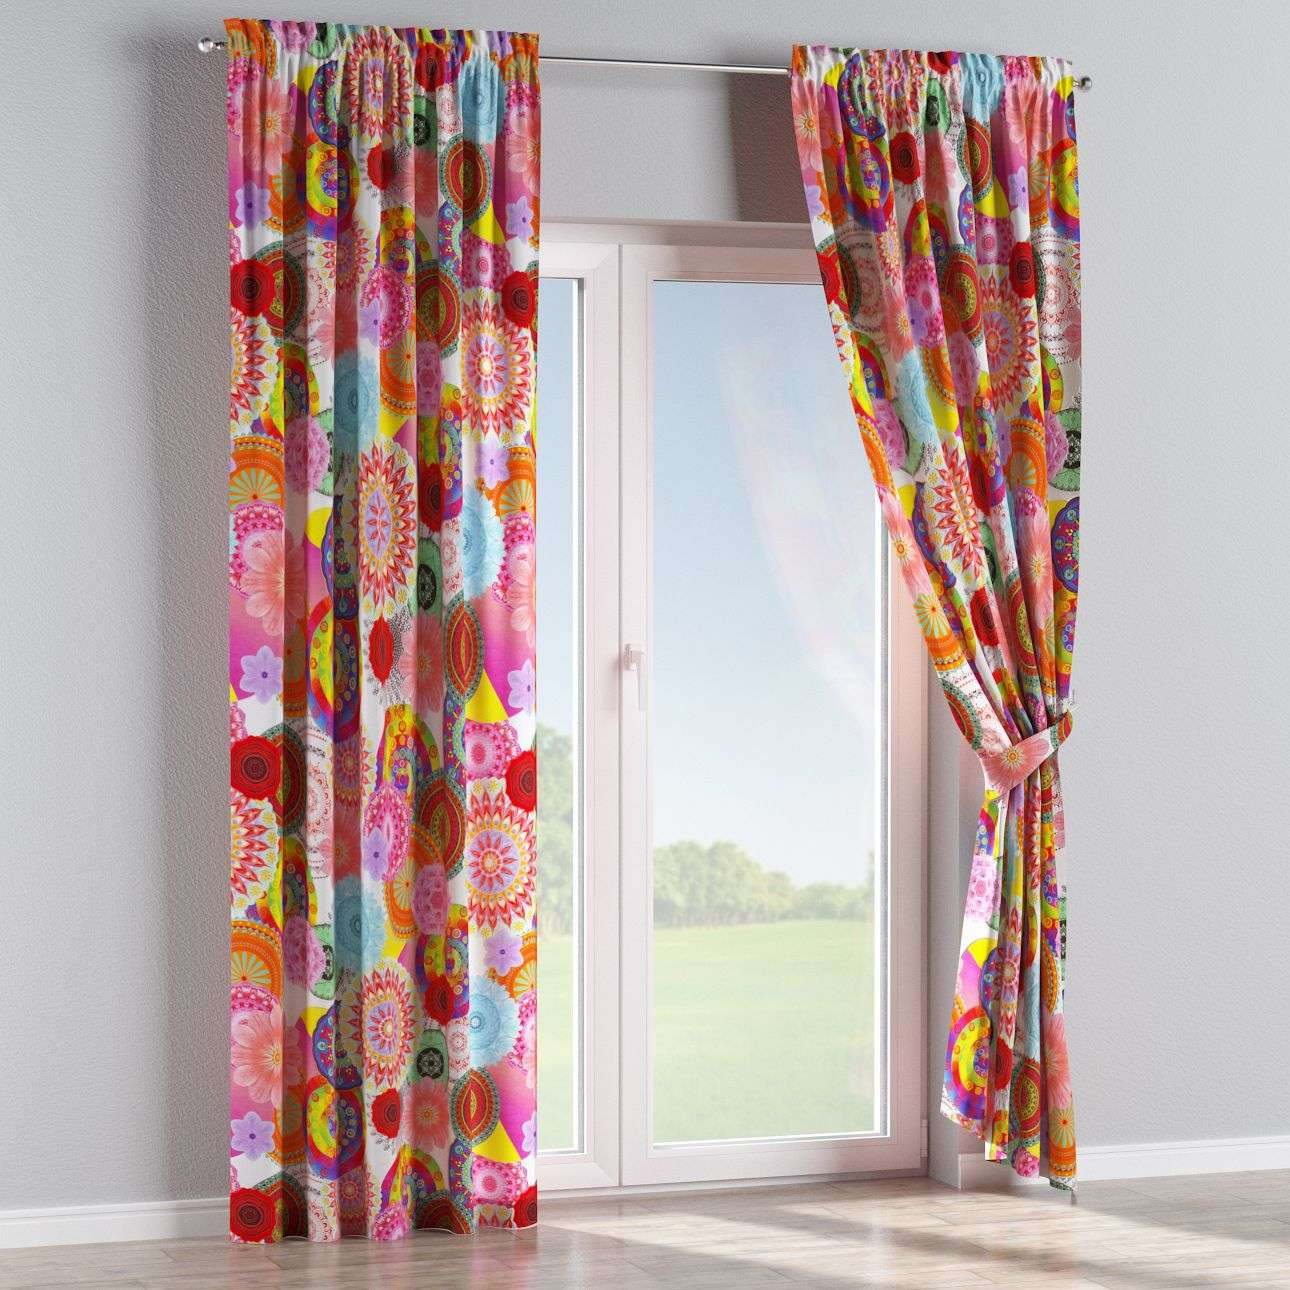 Slot and frill curtains 130 x 260 cm (51 x 102 inch) in collection Comic Book & Geo Prints, fabric: 135-22